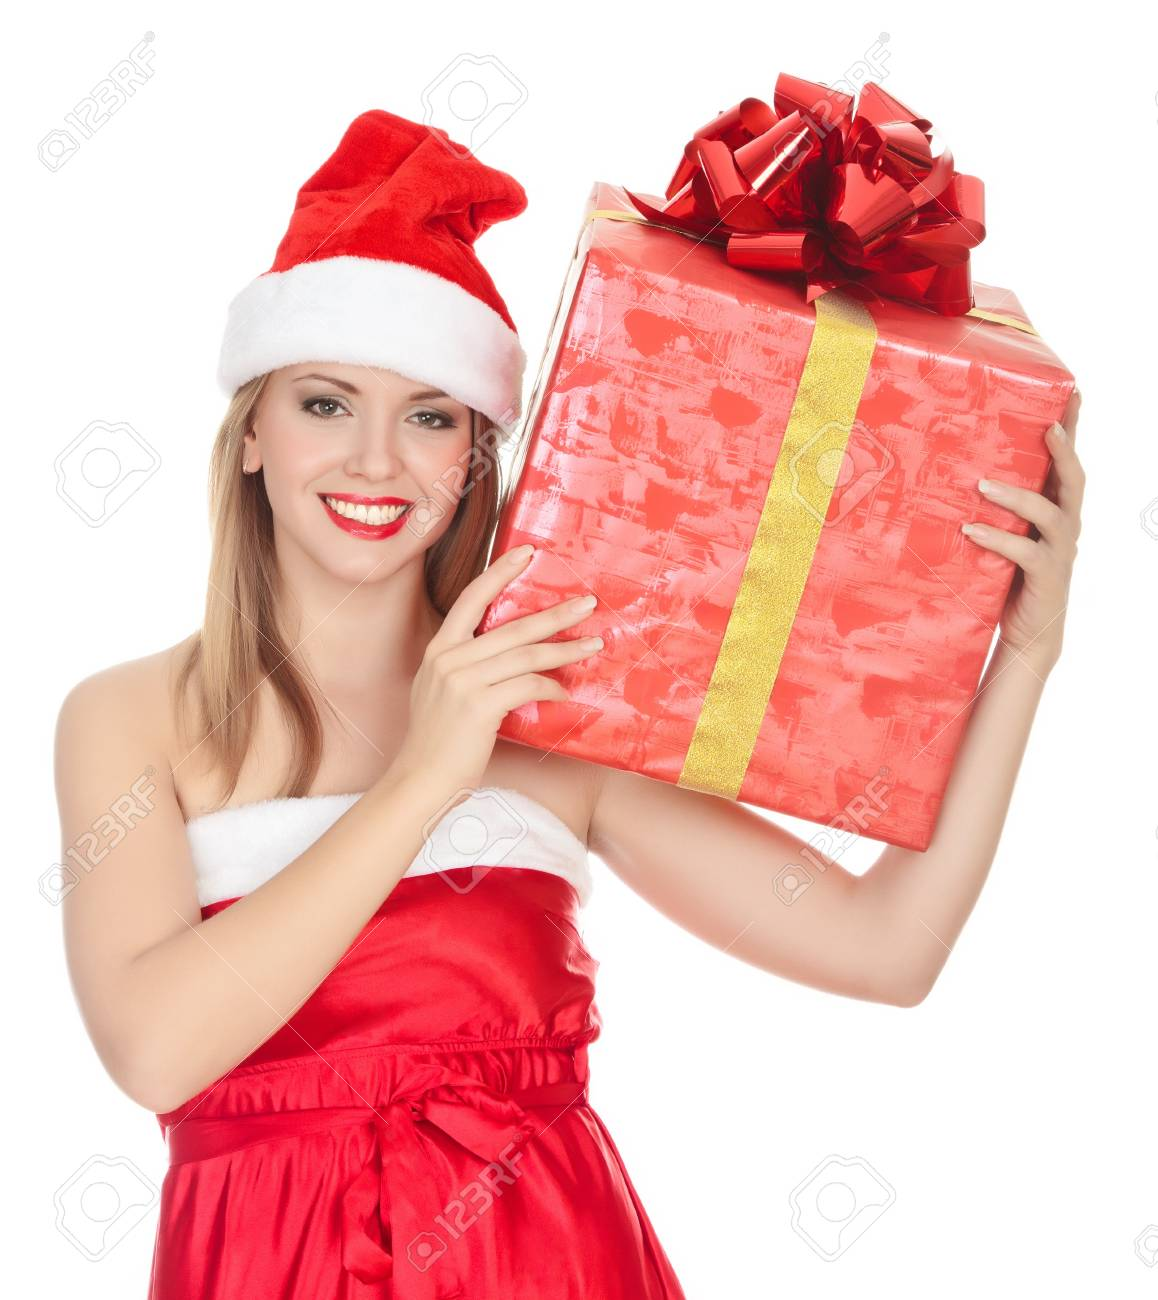 Cheerful santa helper girl with big gift box on her shoulder. Isolated over a white background. Stock Photo - 8329460